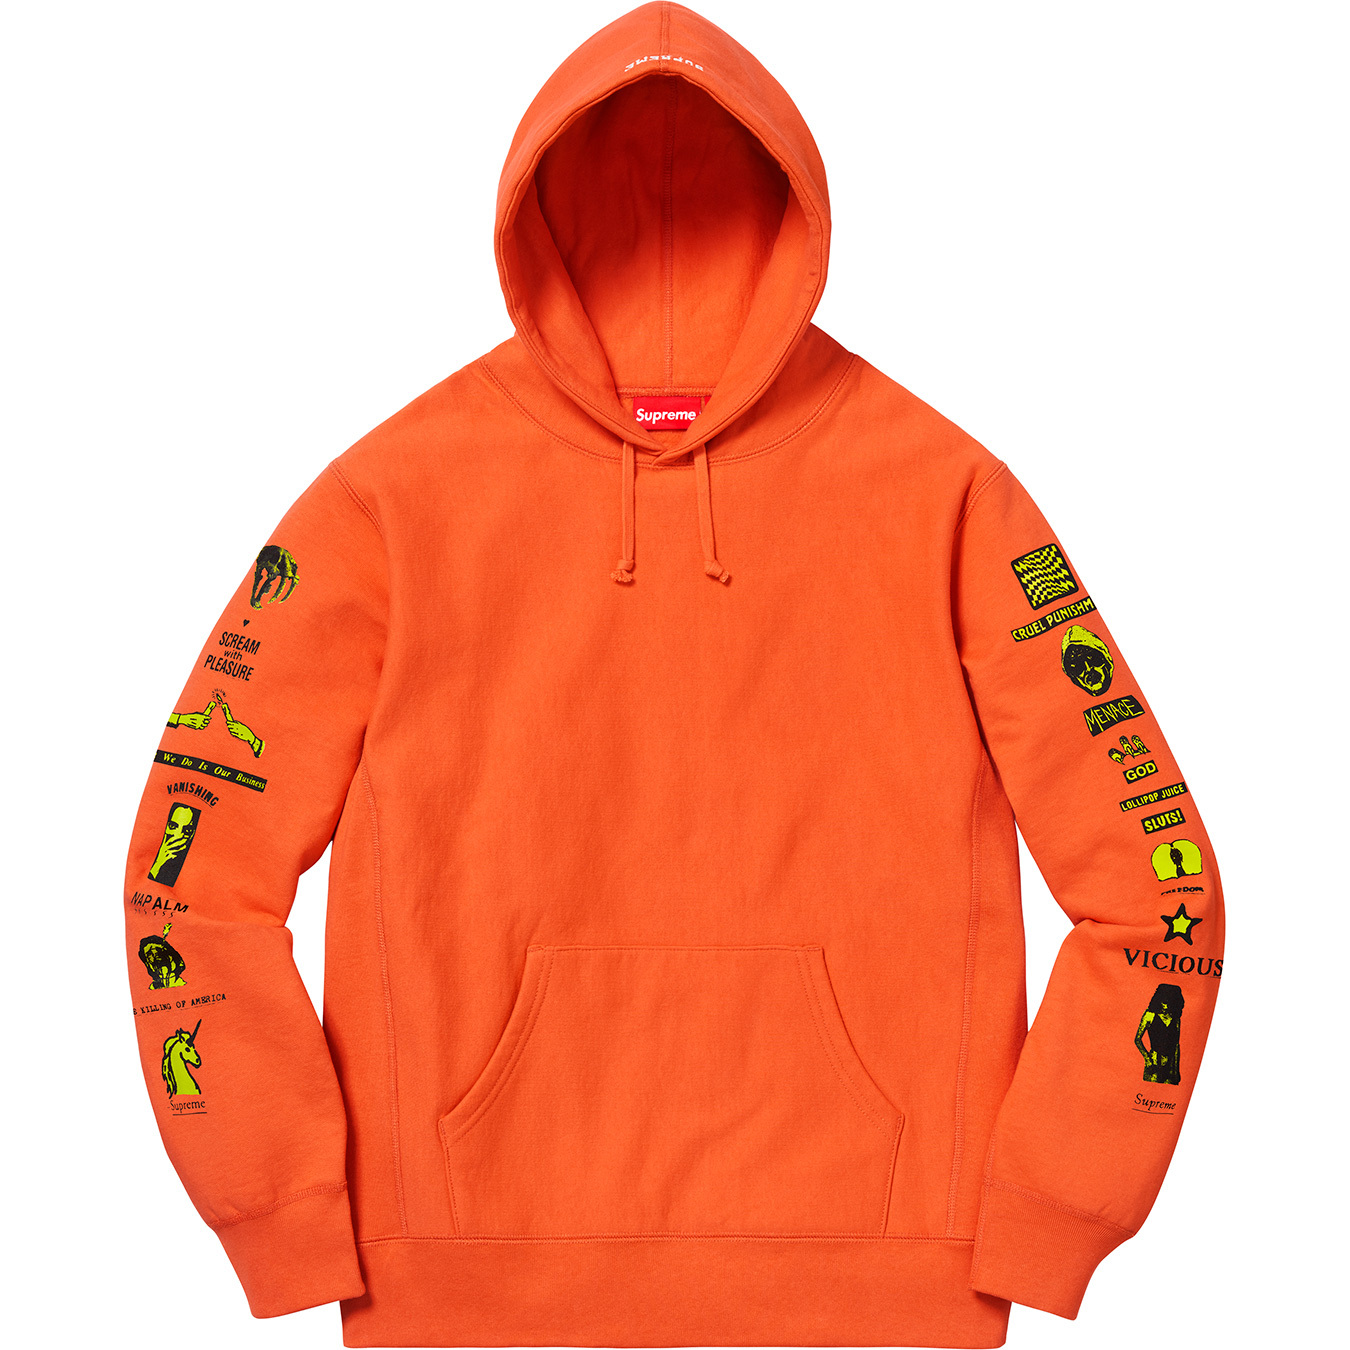 supreme-2018aw-fall-winter-menace-hooded-sweatshirt